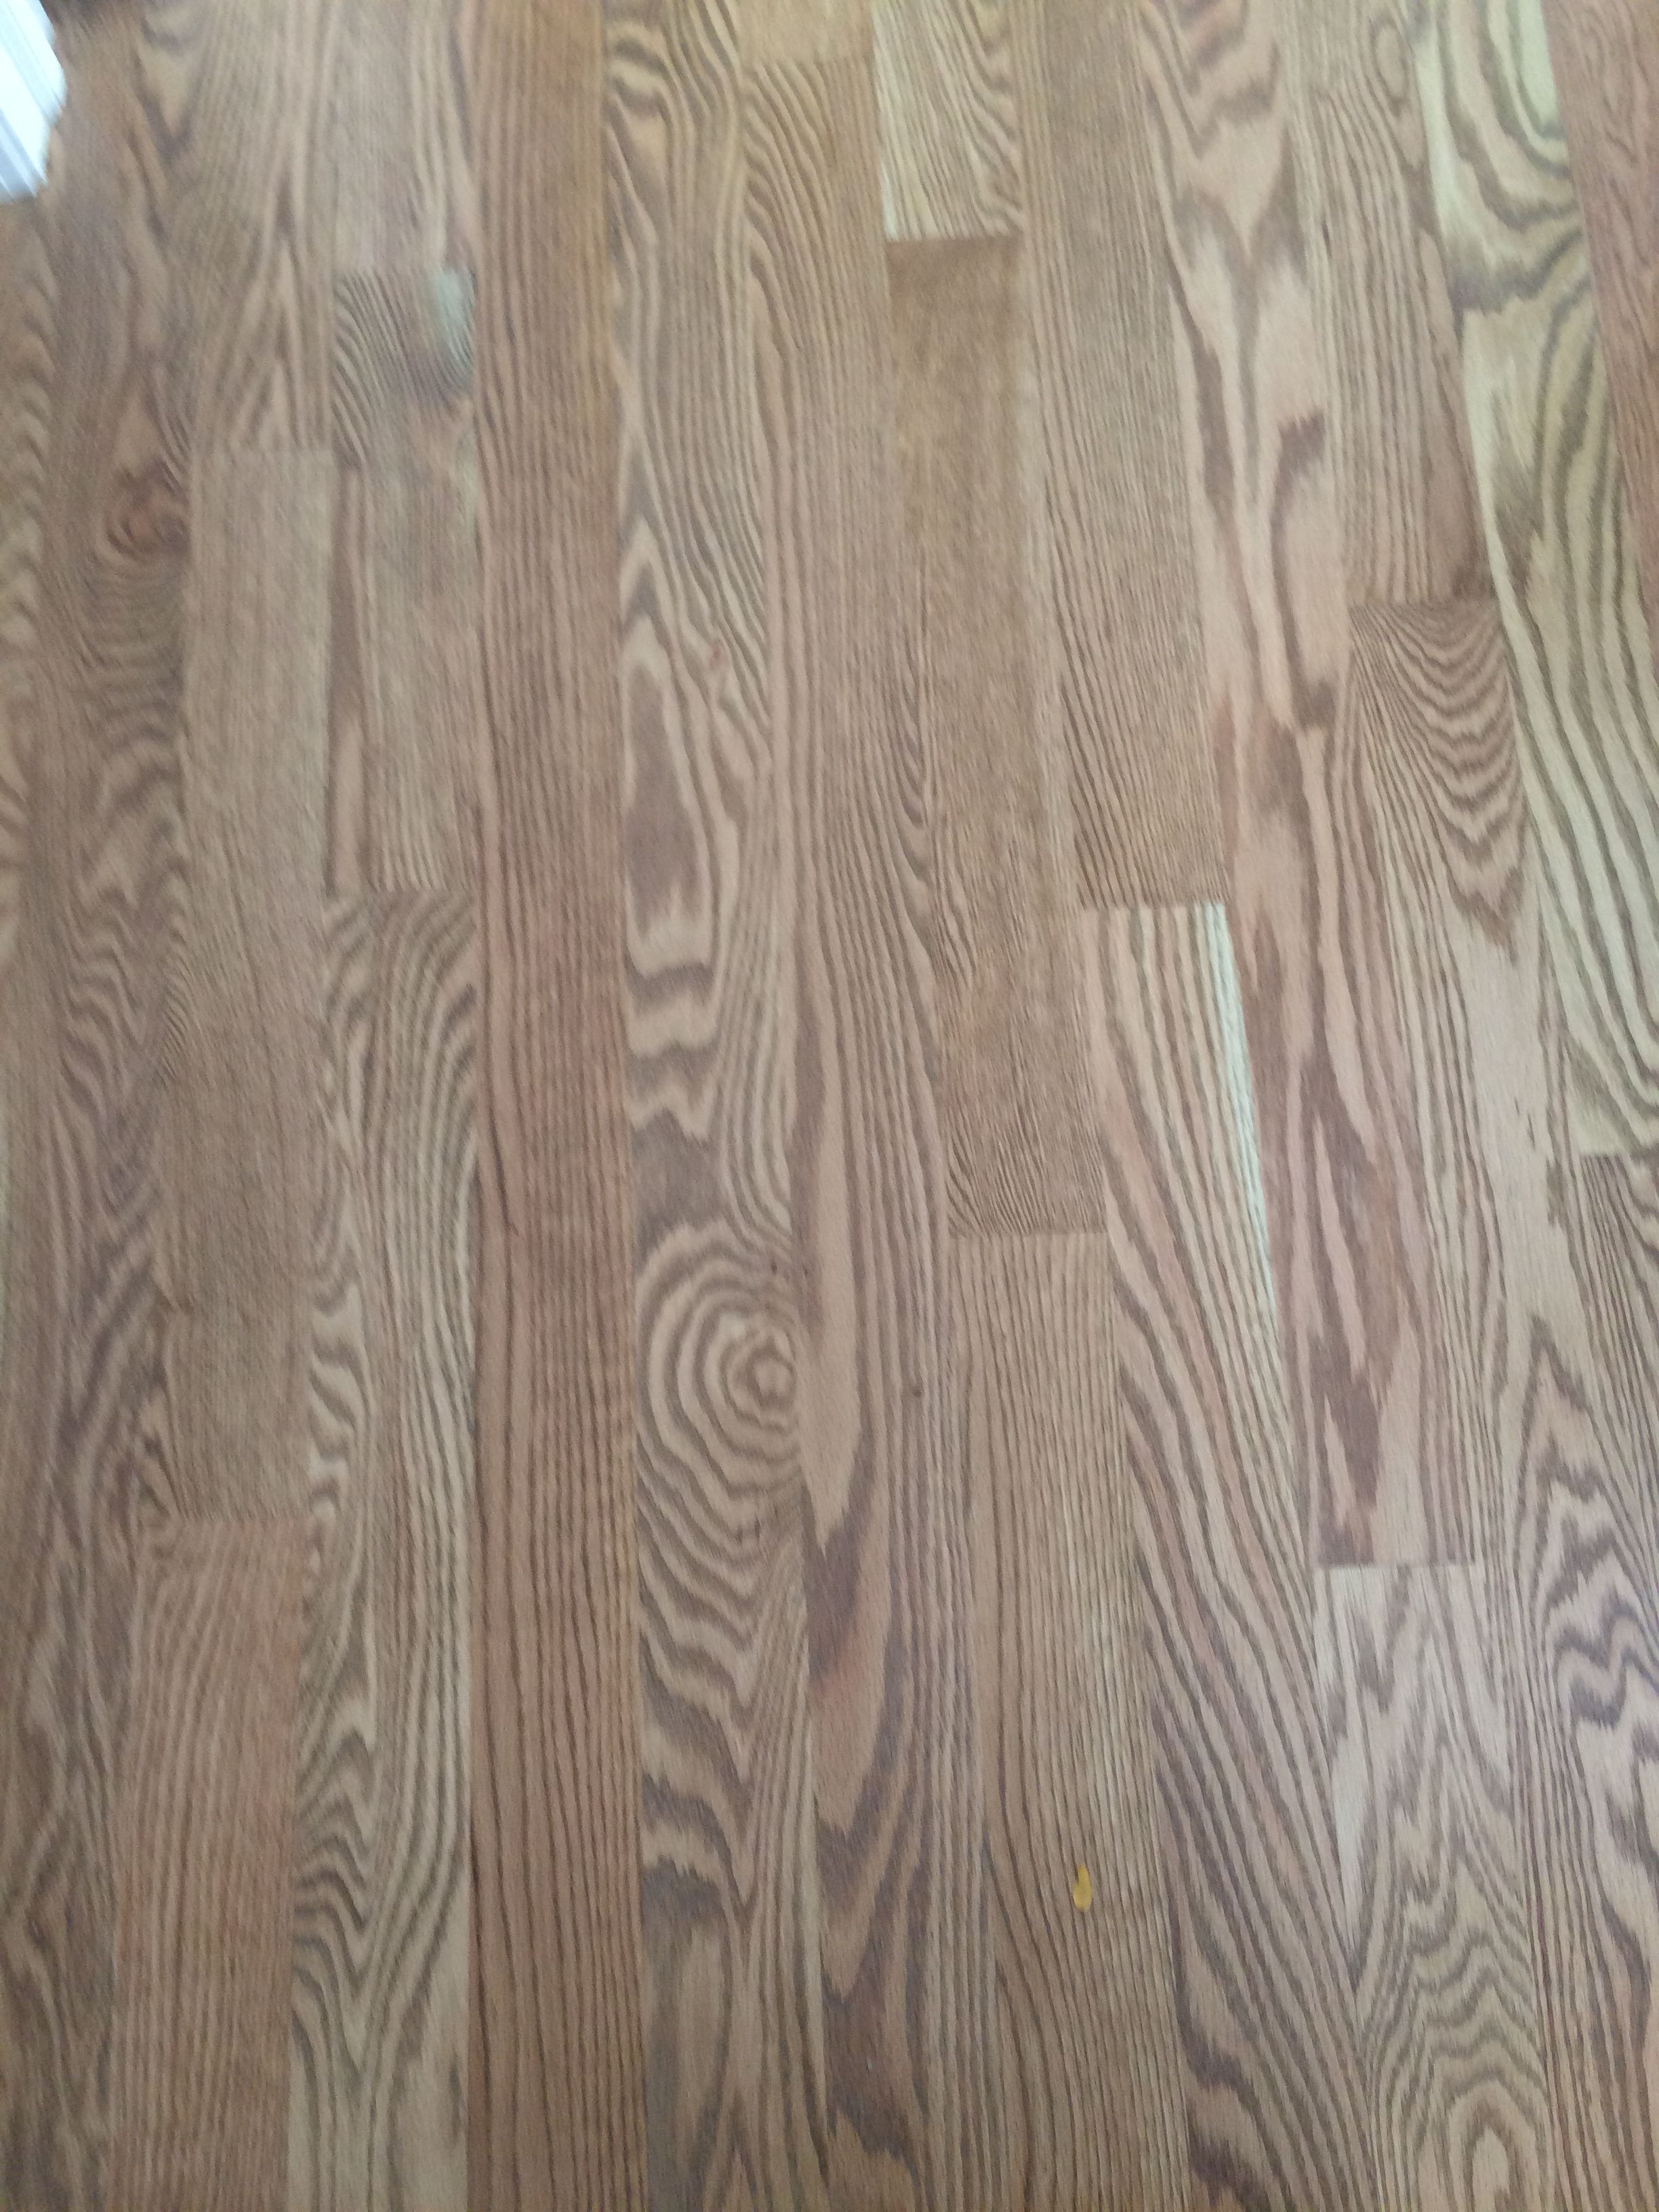 red oak hardwood with